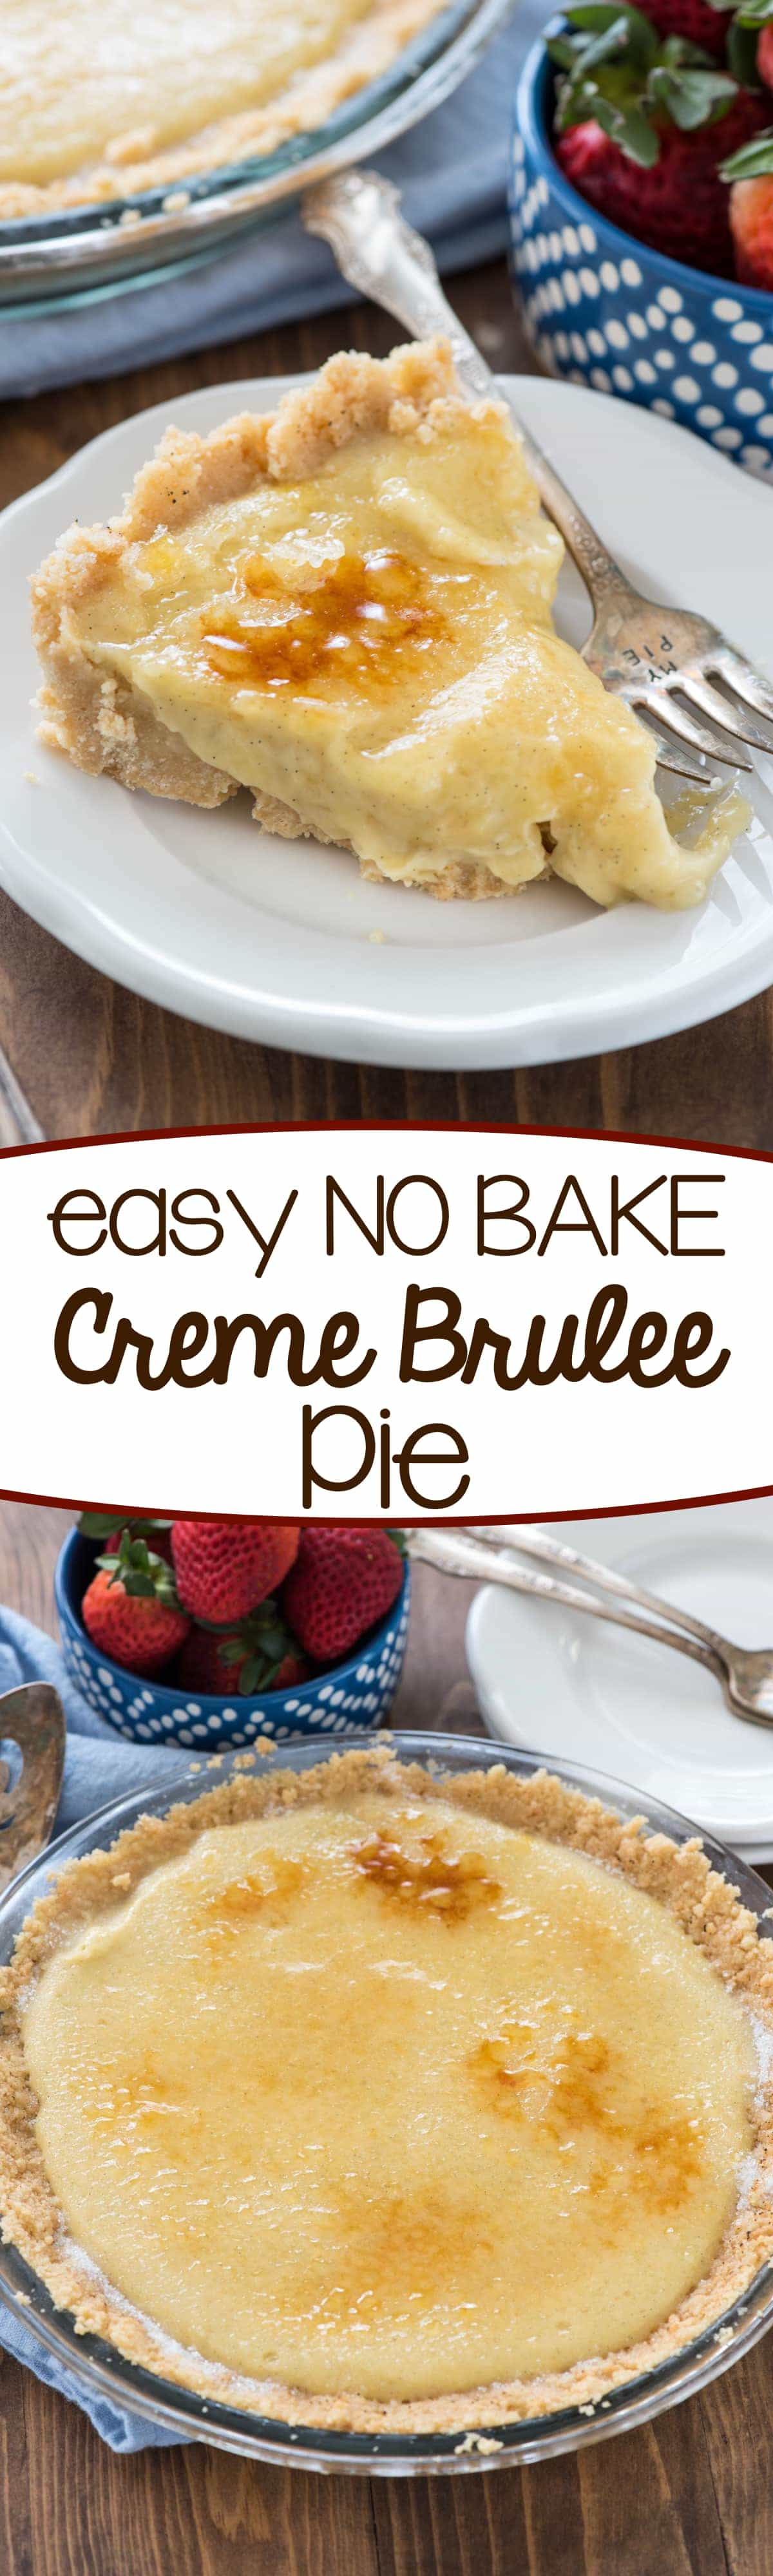 Easy No Bake Creme Brulee Pie - this pie has just a few ingredients ...